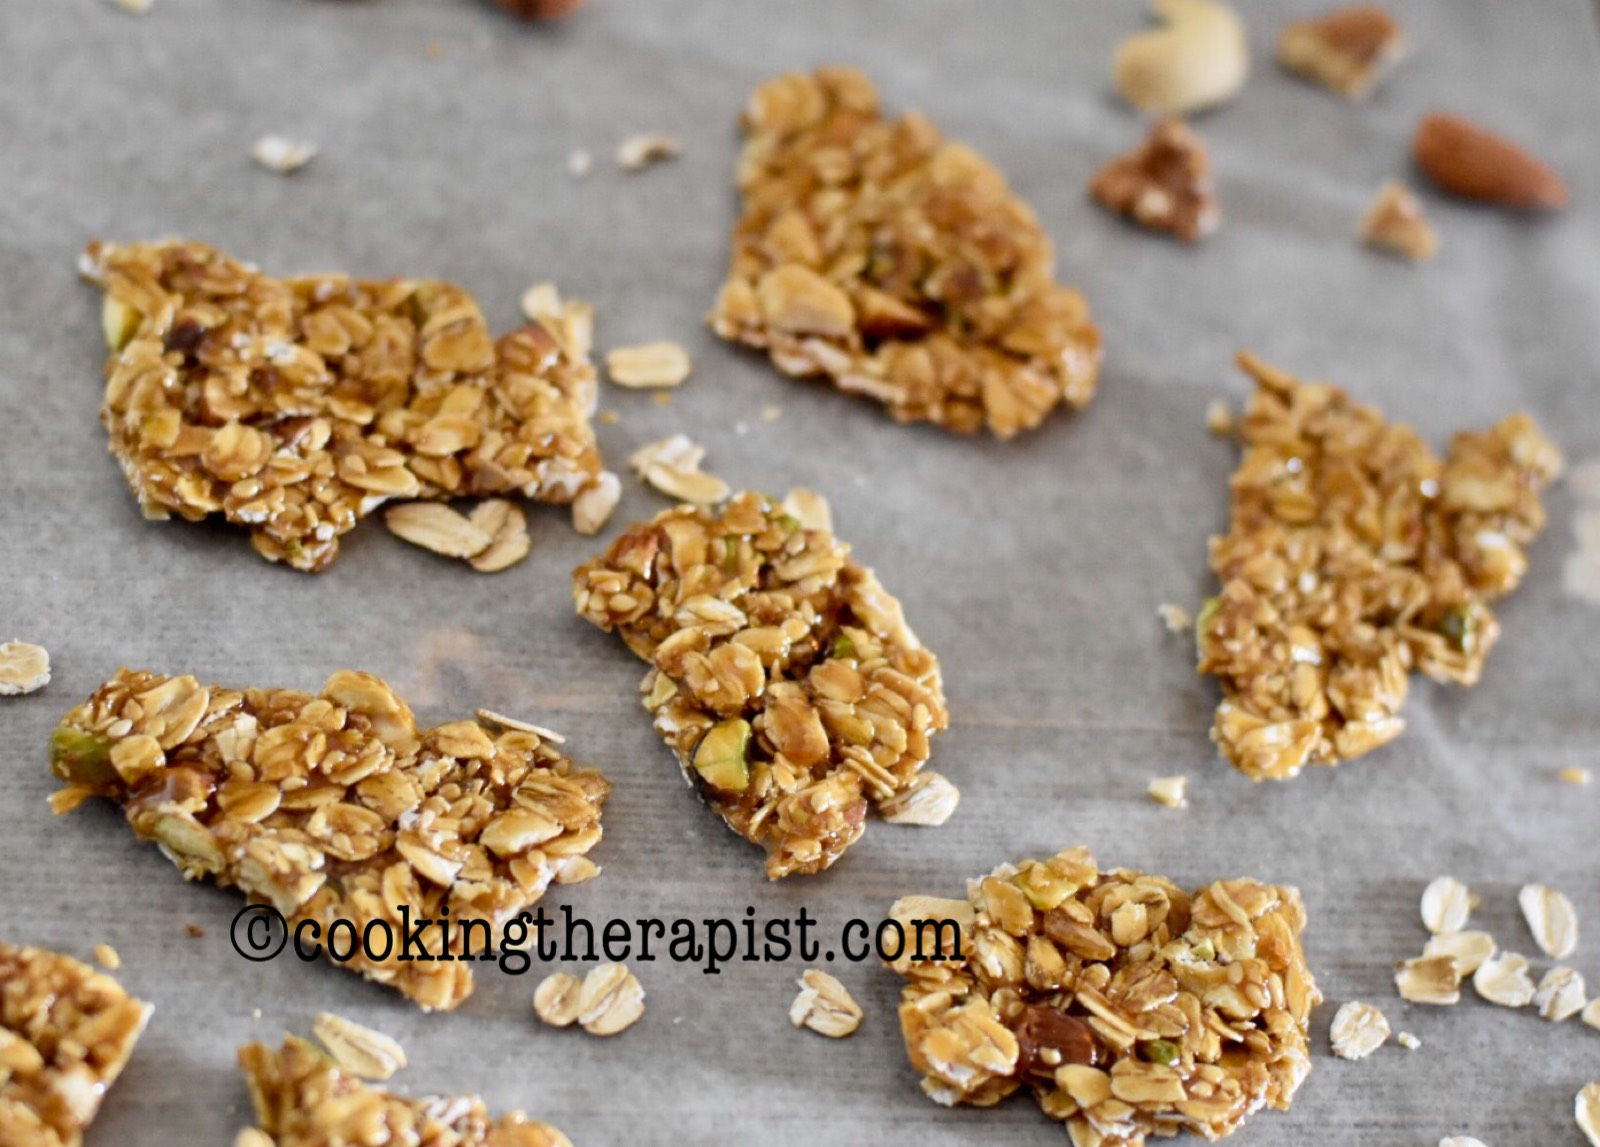 Oats and nuts chikki /Indian style energy bar/ Oats and nuts brittle ( V + GF )